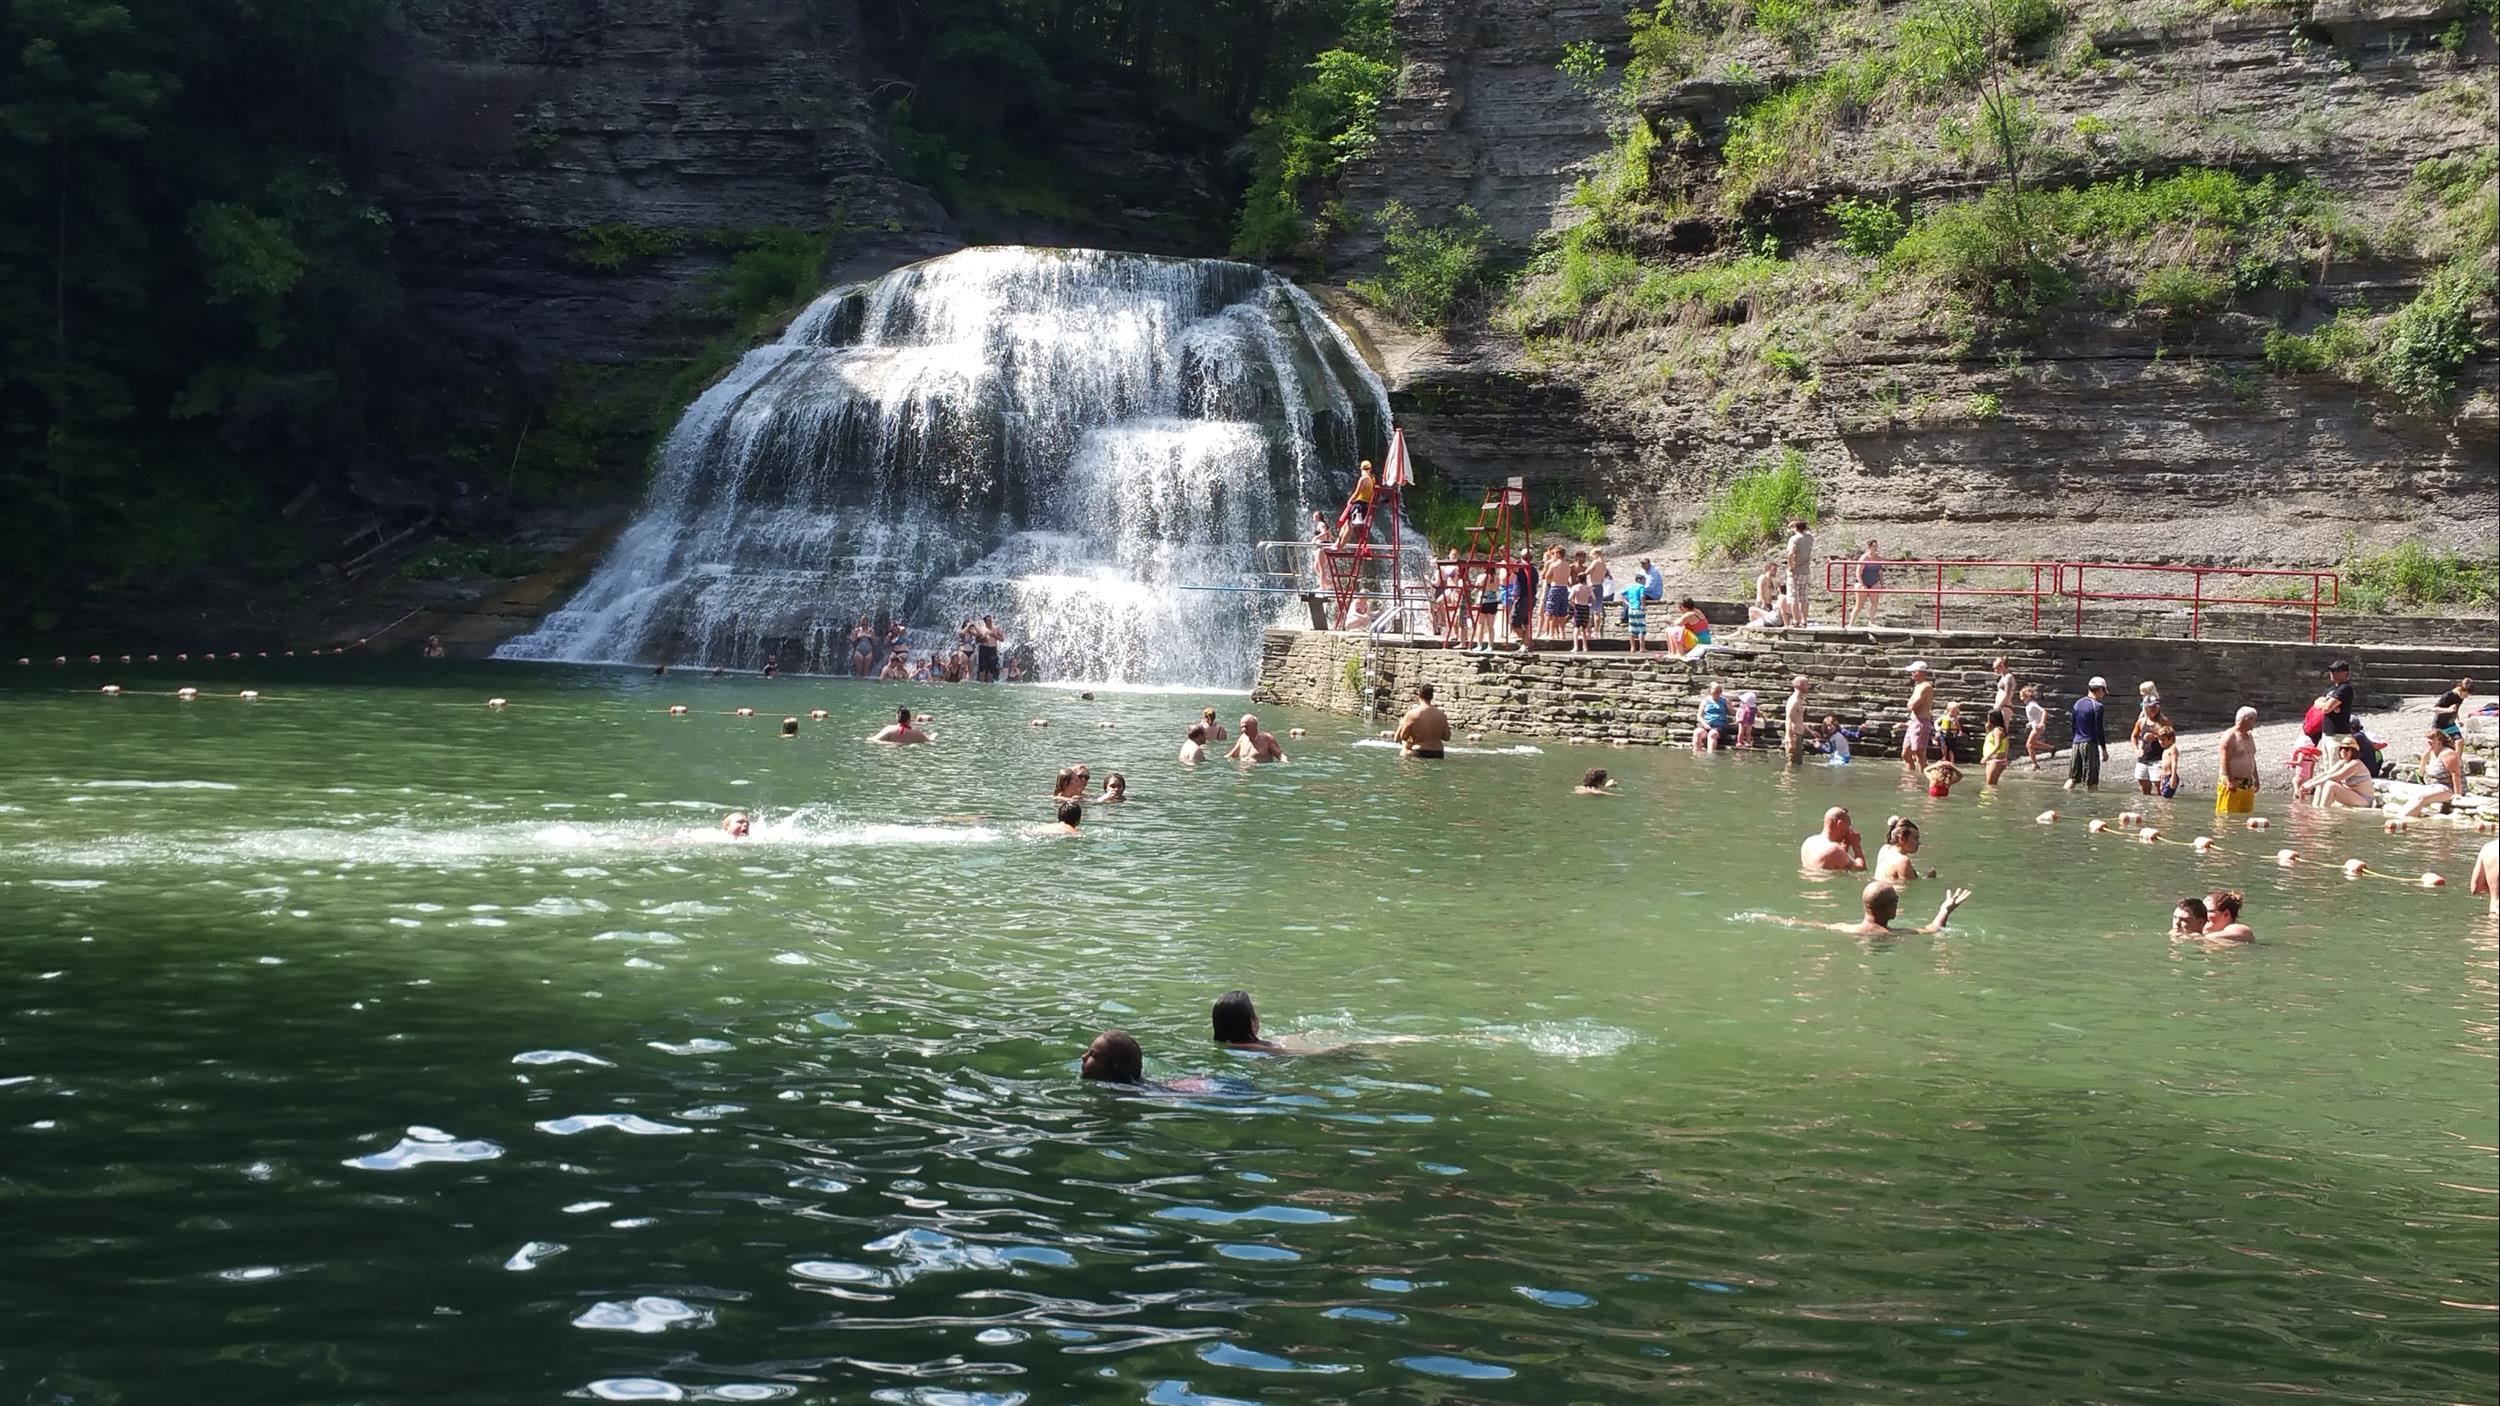 waterfall with people swimming